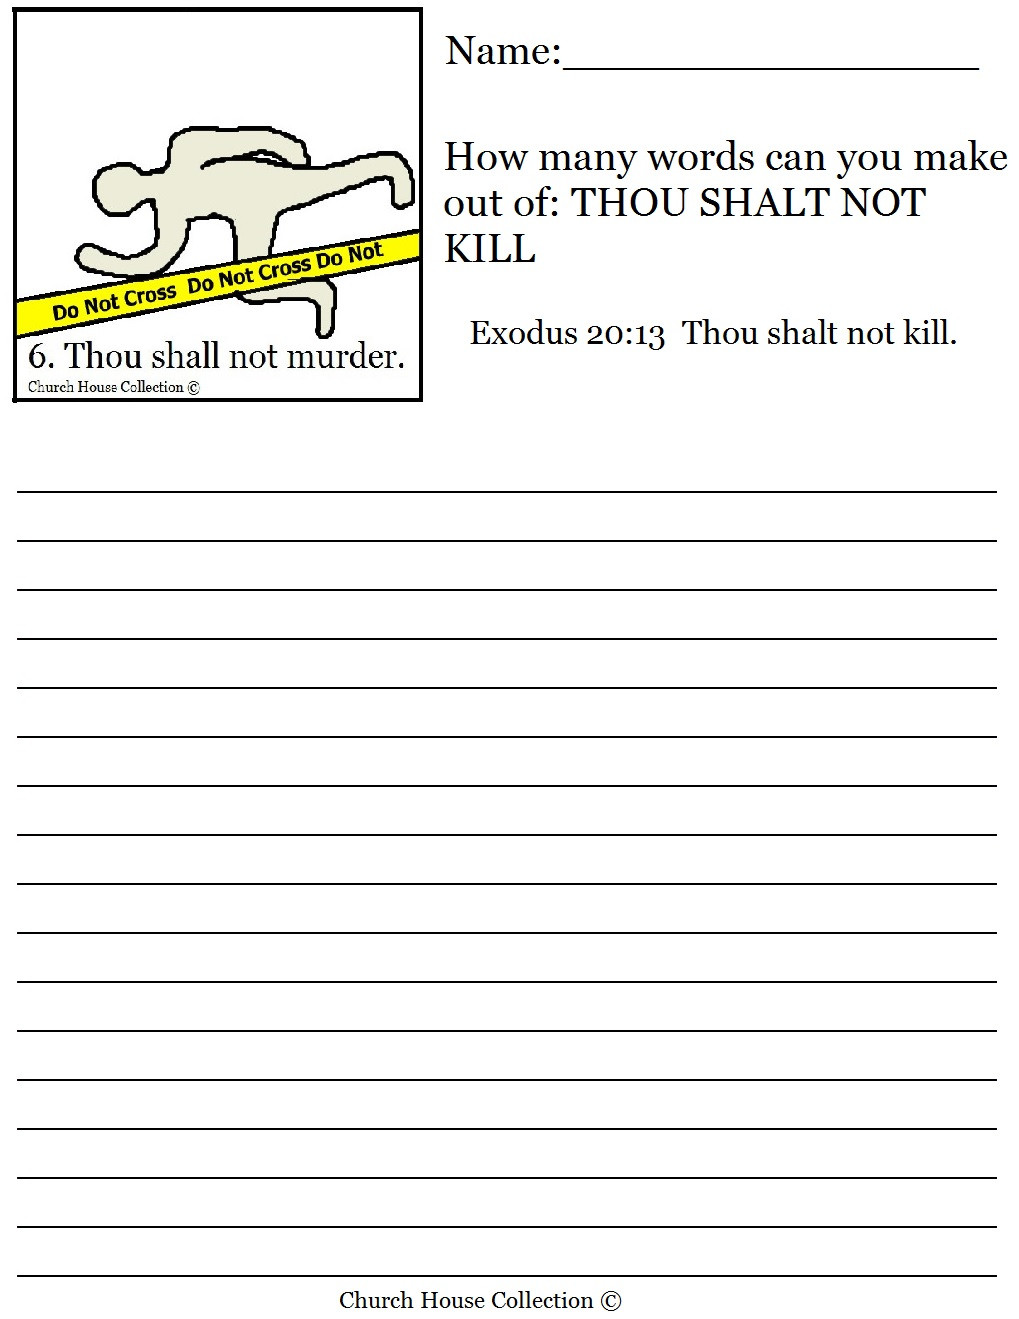 10 Commandments Printable Worksheets